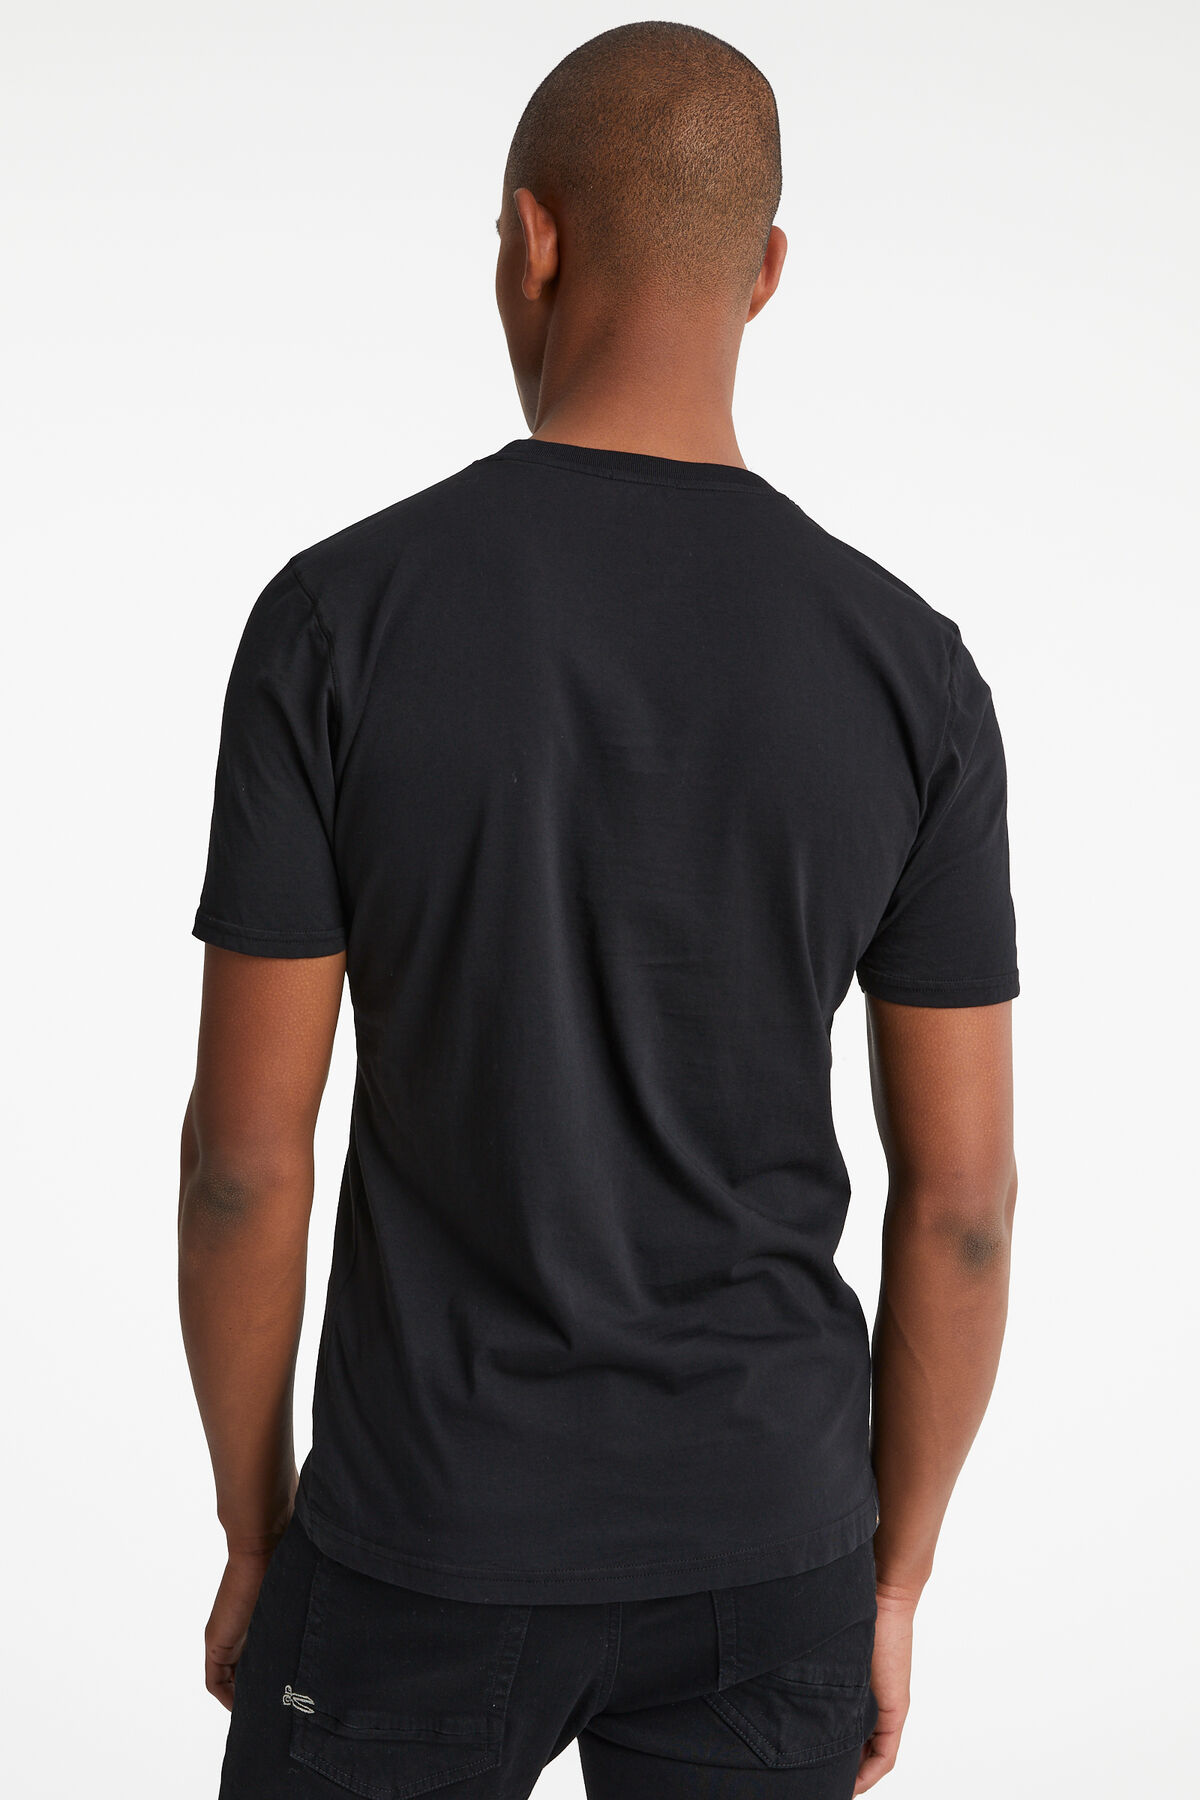 DENHAM APPLIQUE TEE Garment Dyed - Slim Fit